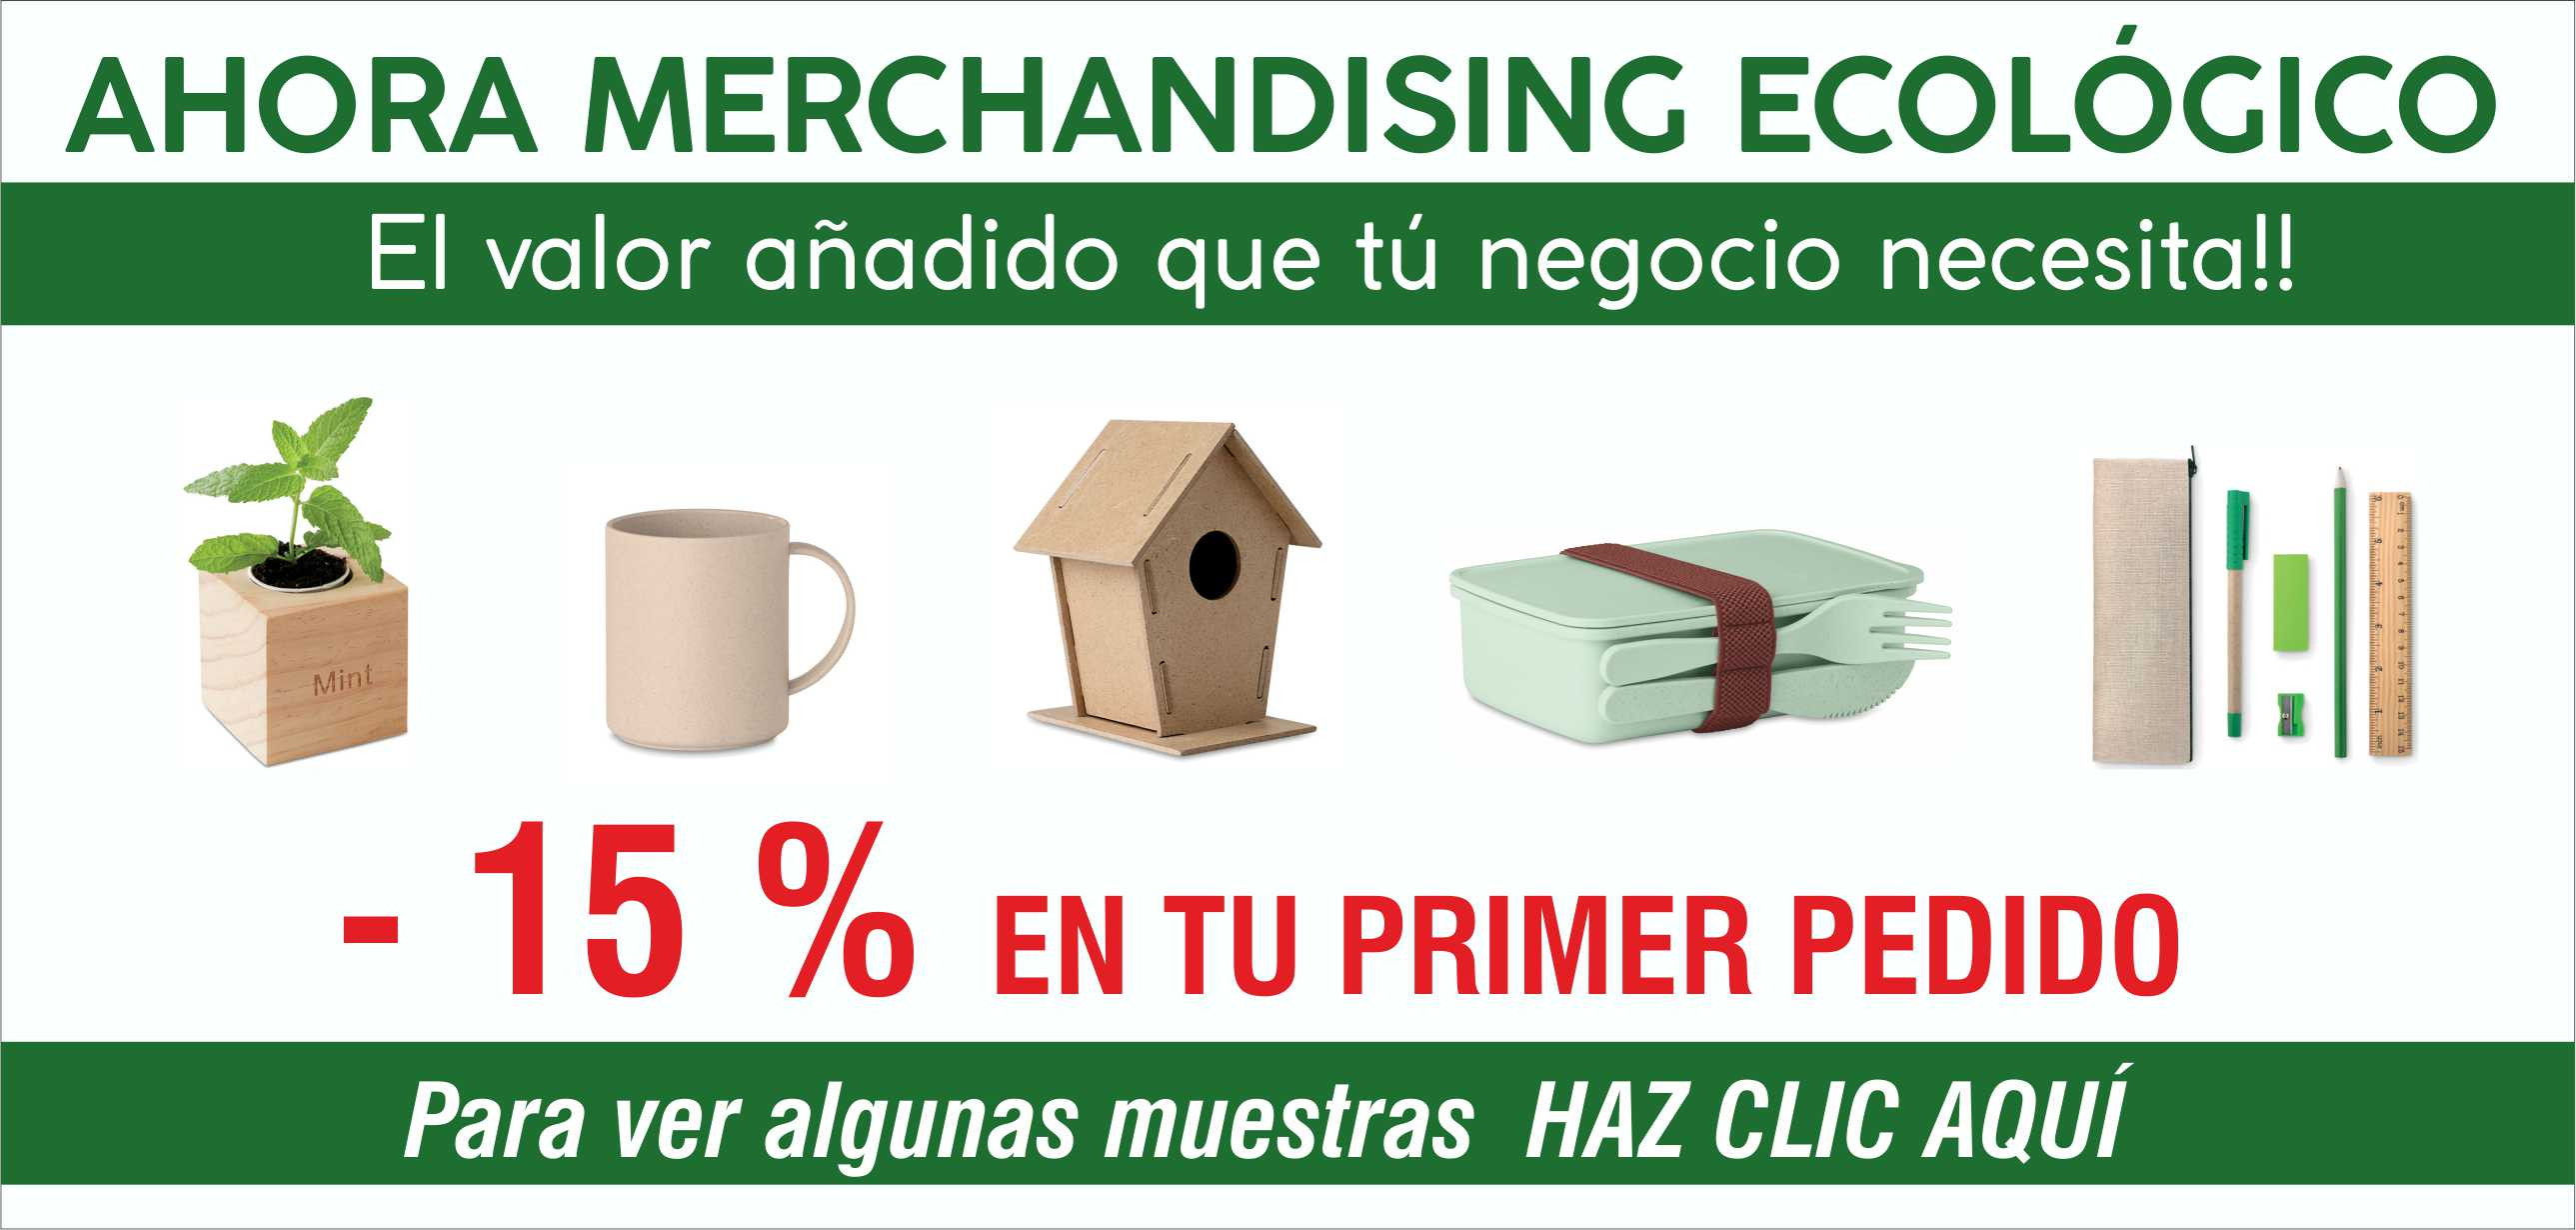 Catalogo merchandising eco